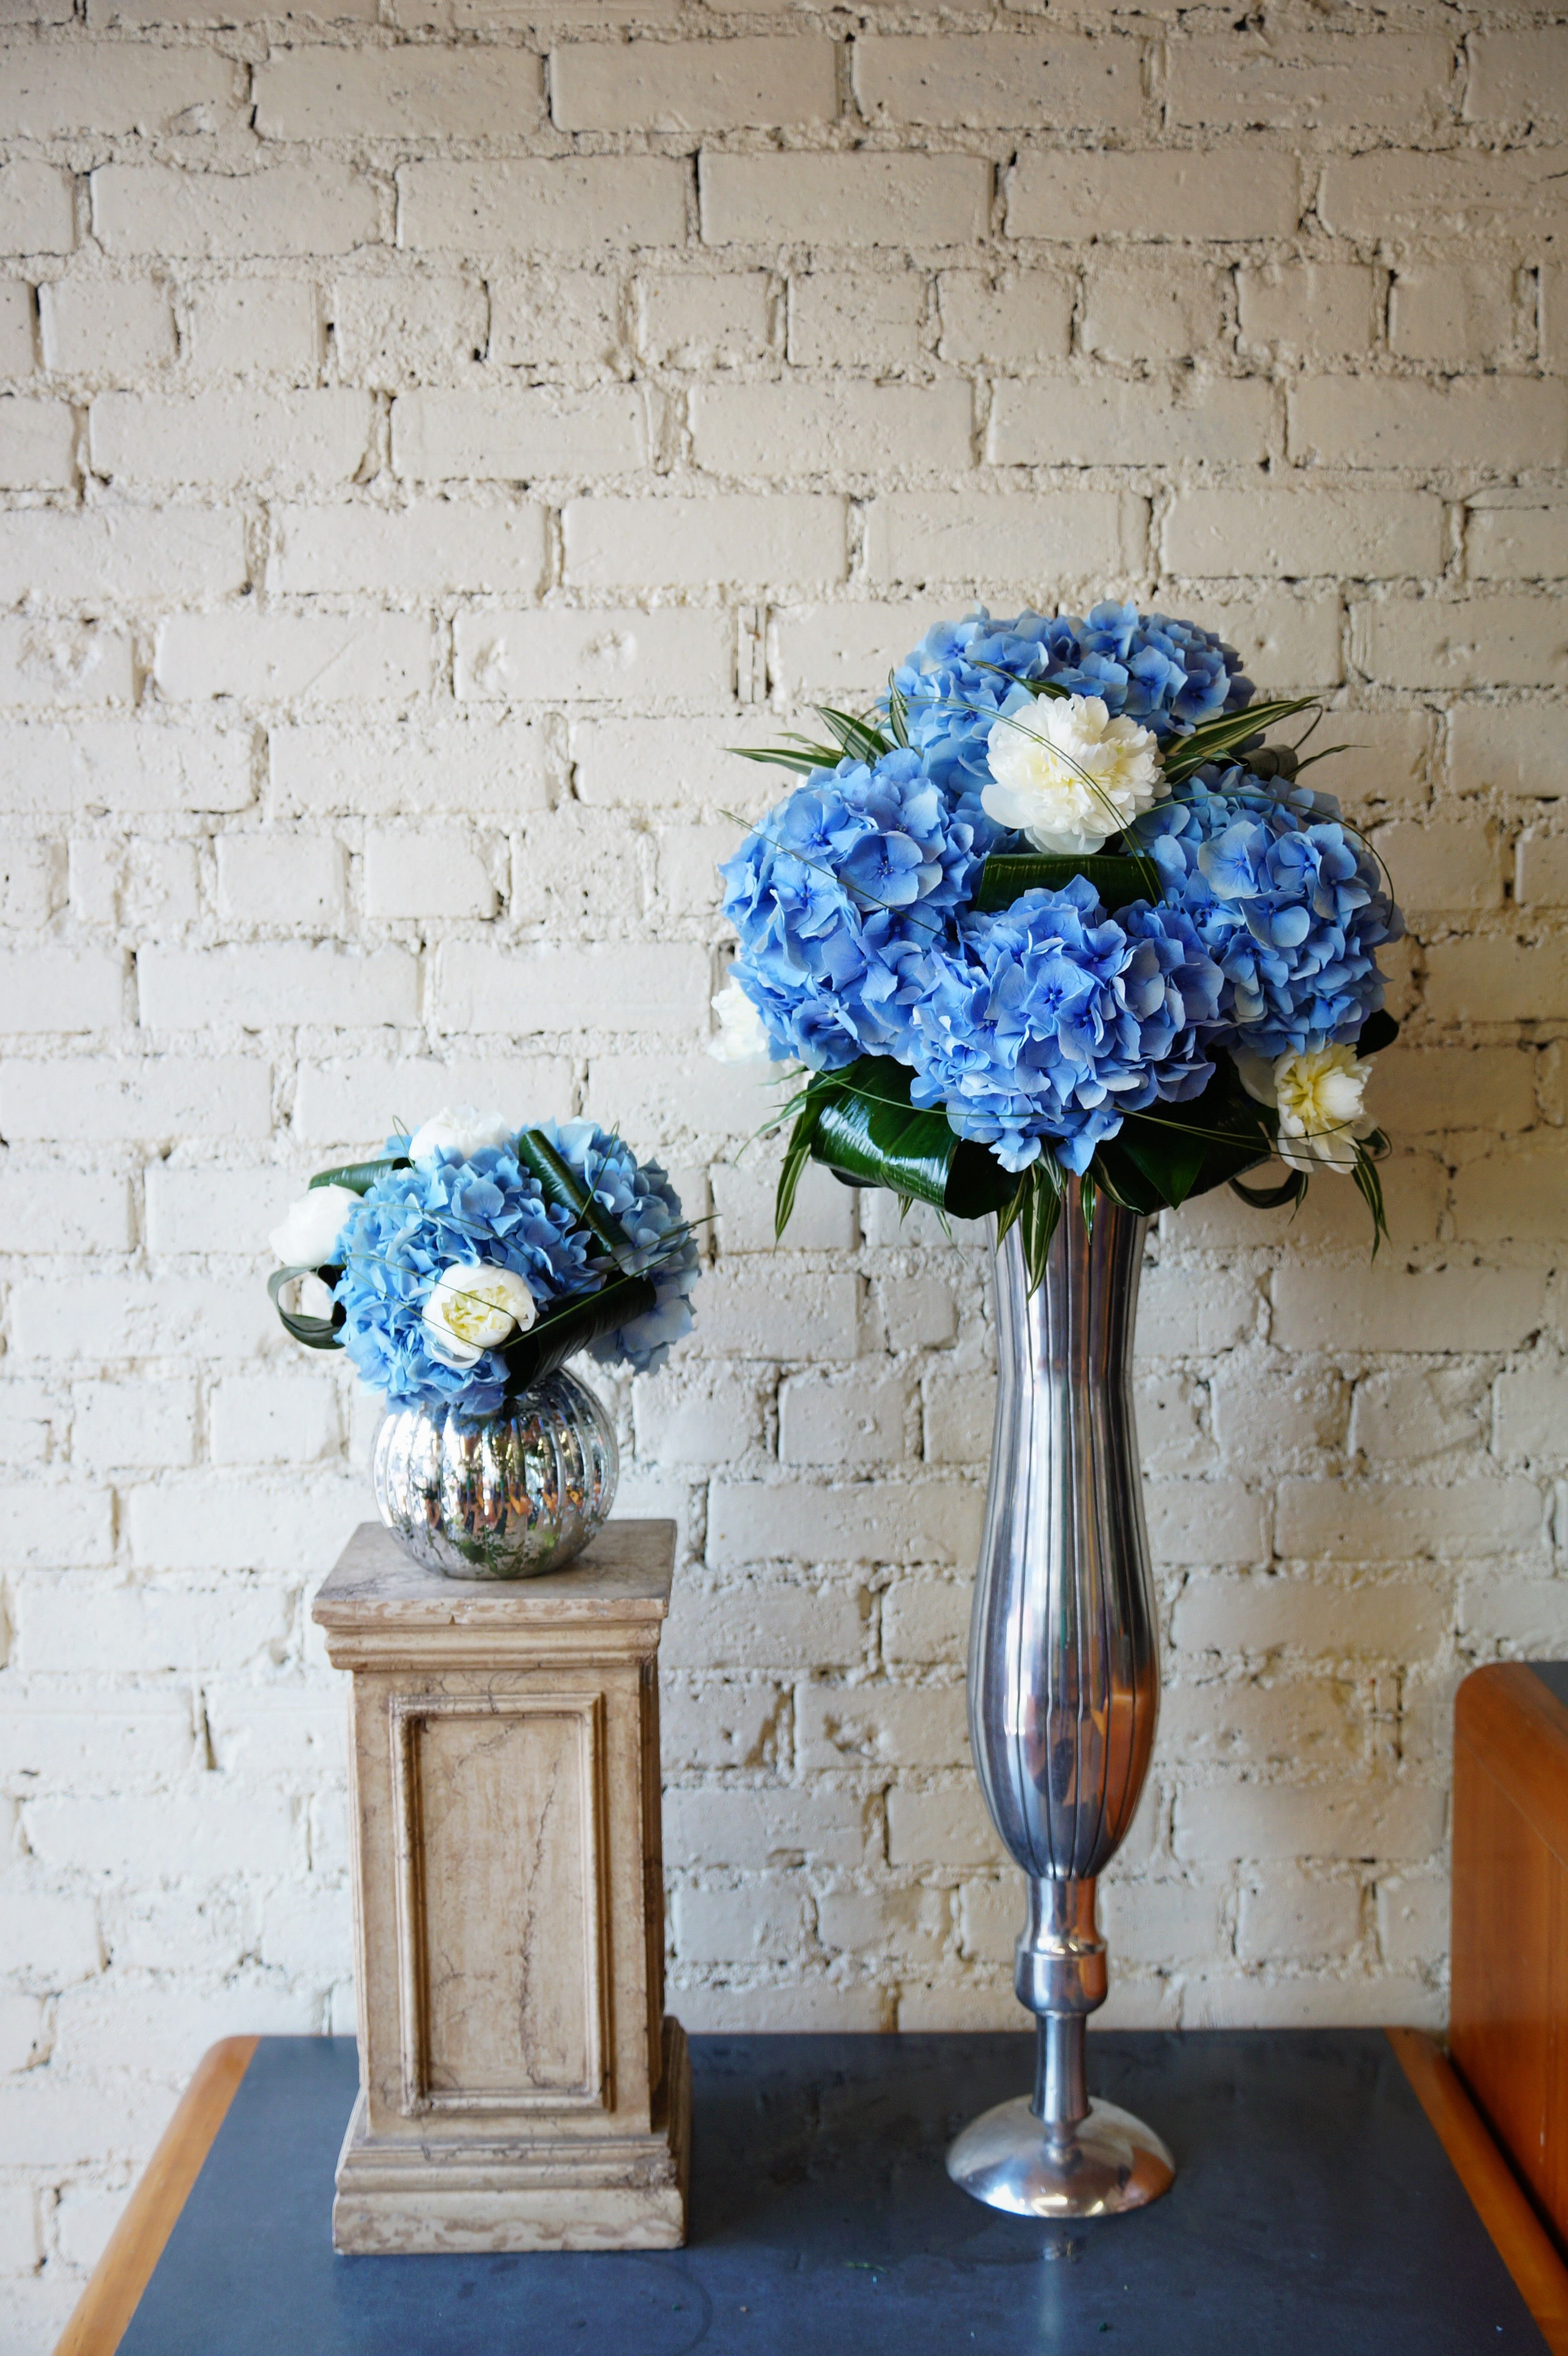 These stunning sample arrangements were made today to show to a corporate customer who want 40 of them, so we wanted to let them see what the finished products will look like. Hopefully they'll be happy with what they see! :) #reidsflorists #hydrangea #corporateflowers